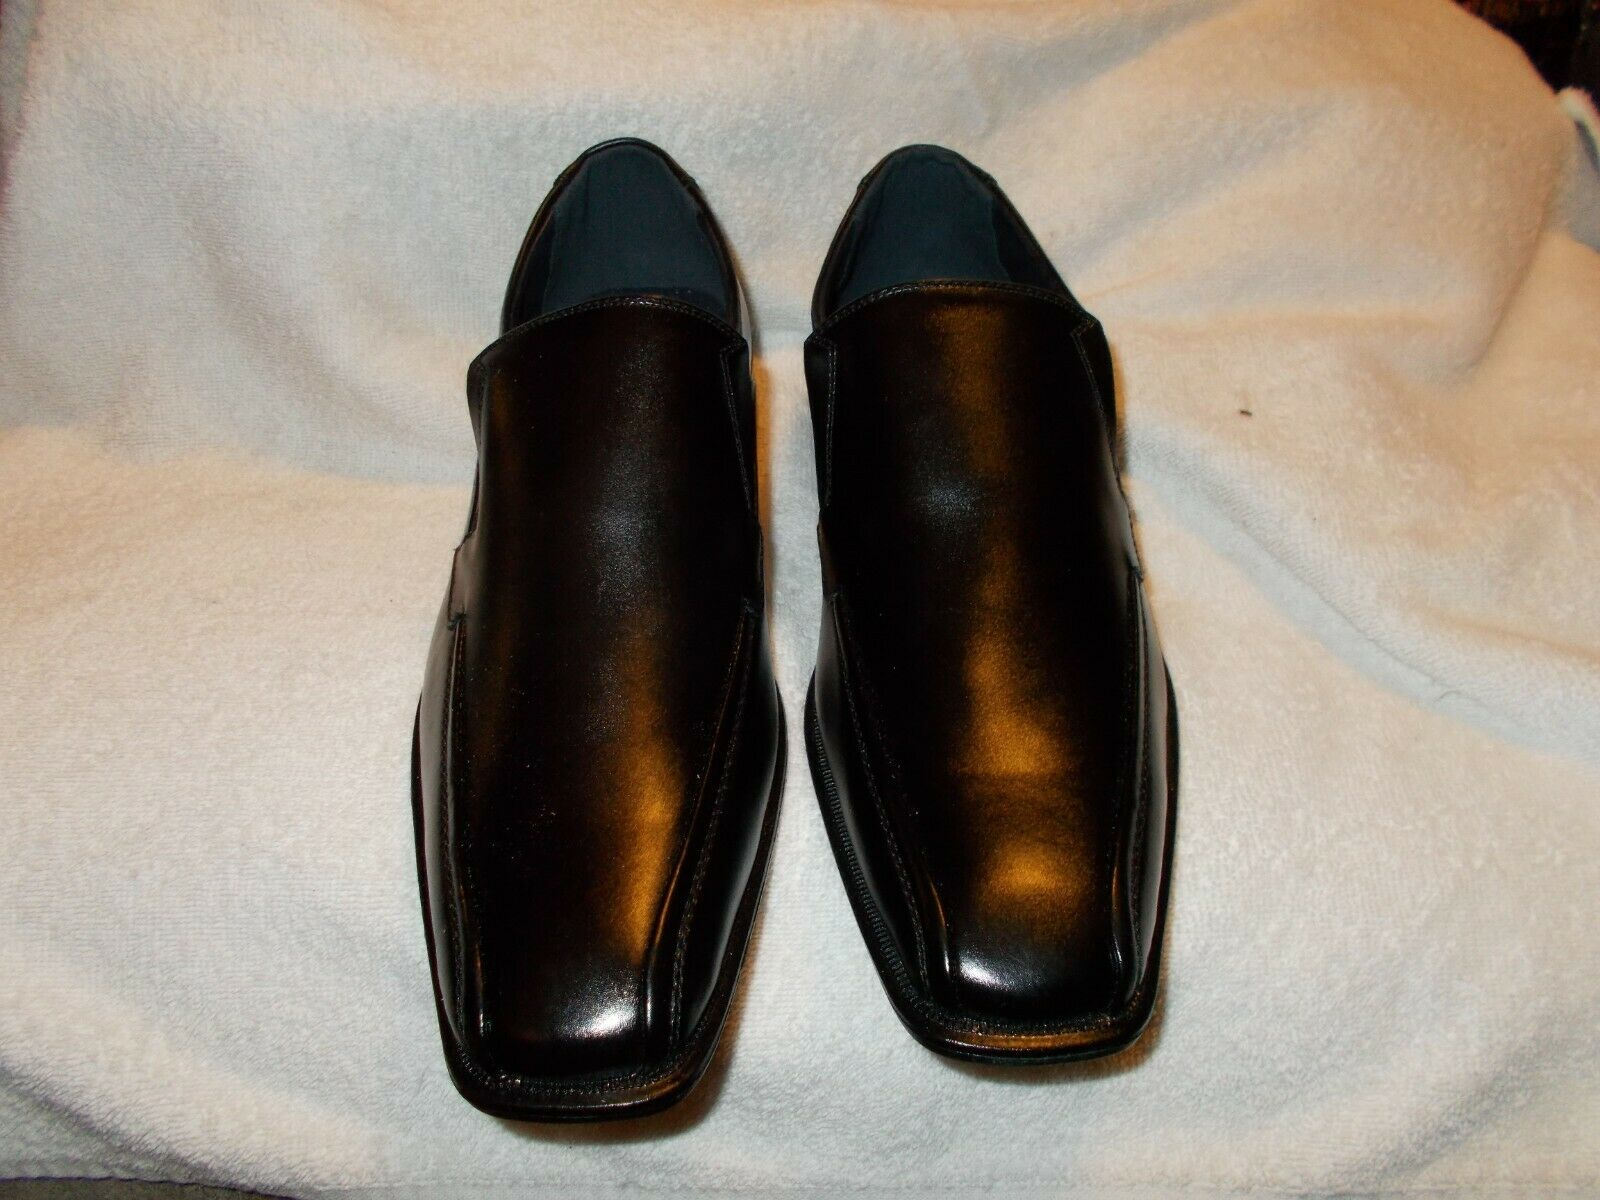 Joseph Abboud Mens Black Leather Slip On Loafers Oxford Dress Shoes Size 8